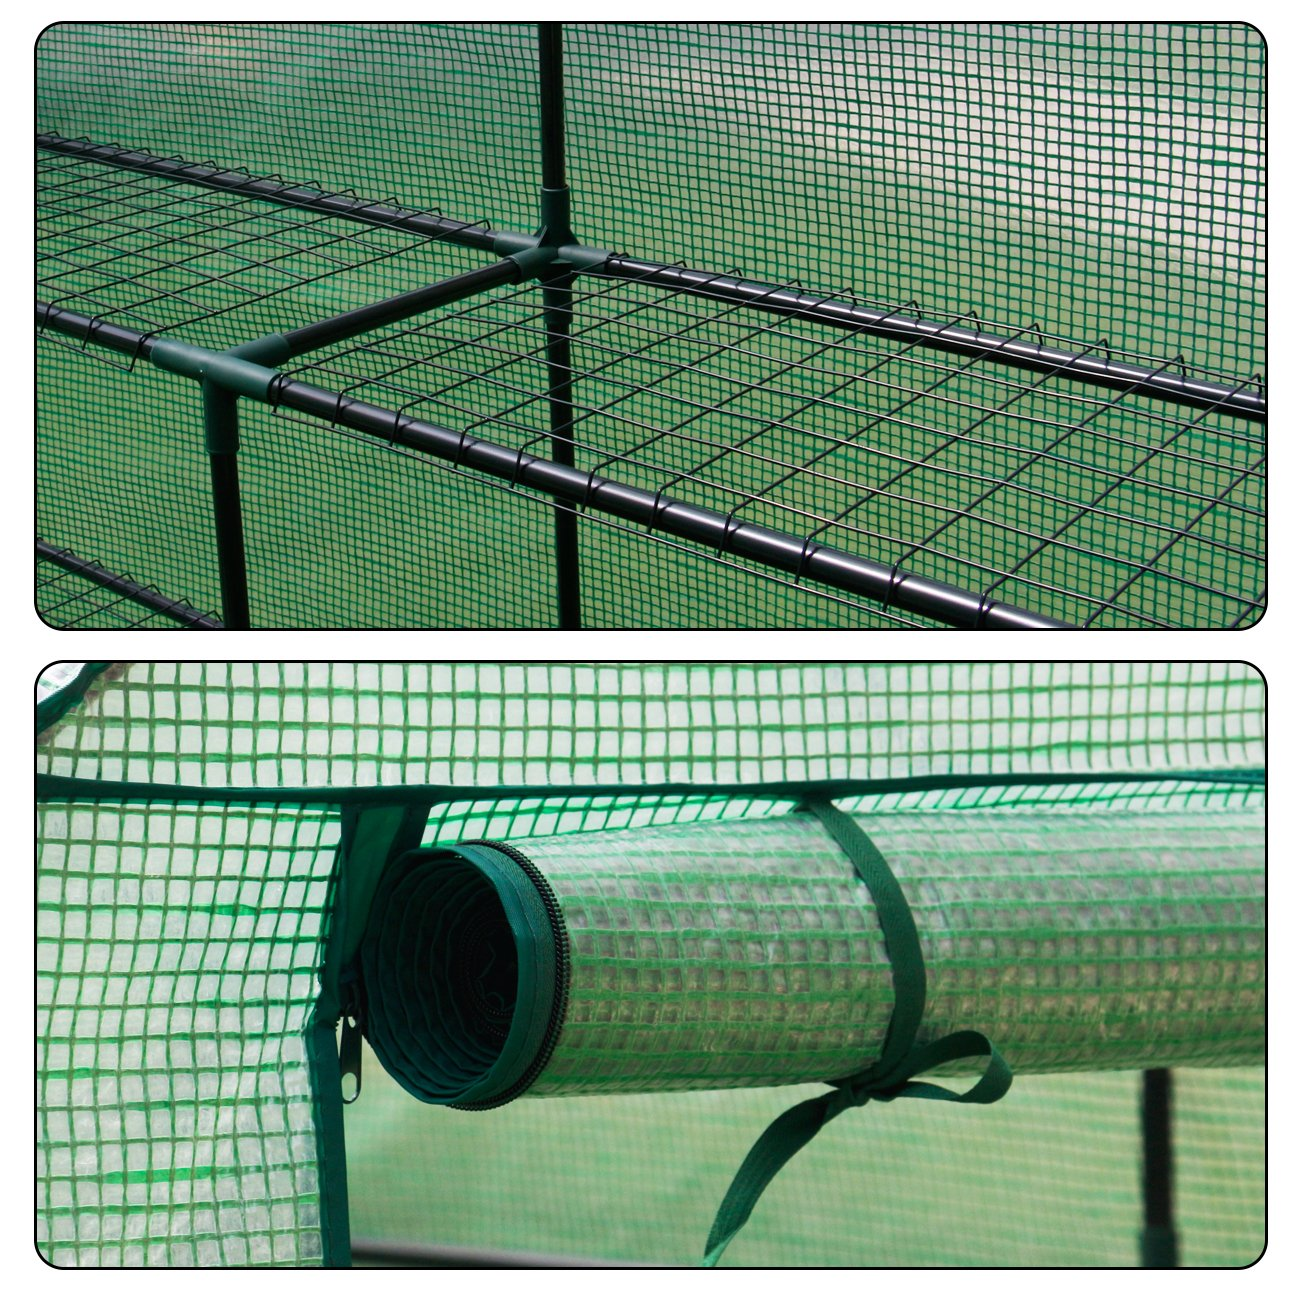 AODAILIHB Reinforced PE Net 6 Layers 8 Shelves Greenhouse Suitable for Lawn and Garden Steel Structure Assembly, 8 Fixed Buttons 4 Floor Fasteners, H x L x W:76.77 x 56.29 x 56.29 inch (02) by AODAILIHB (Image #7)